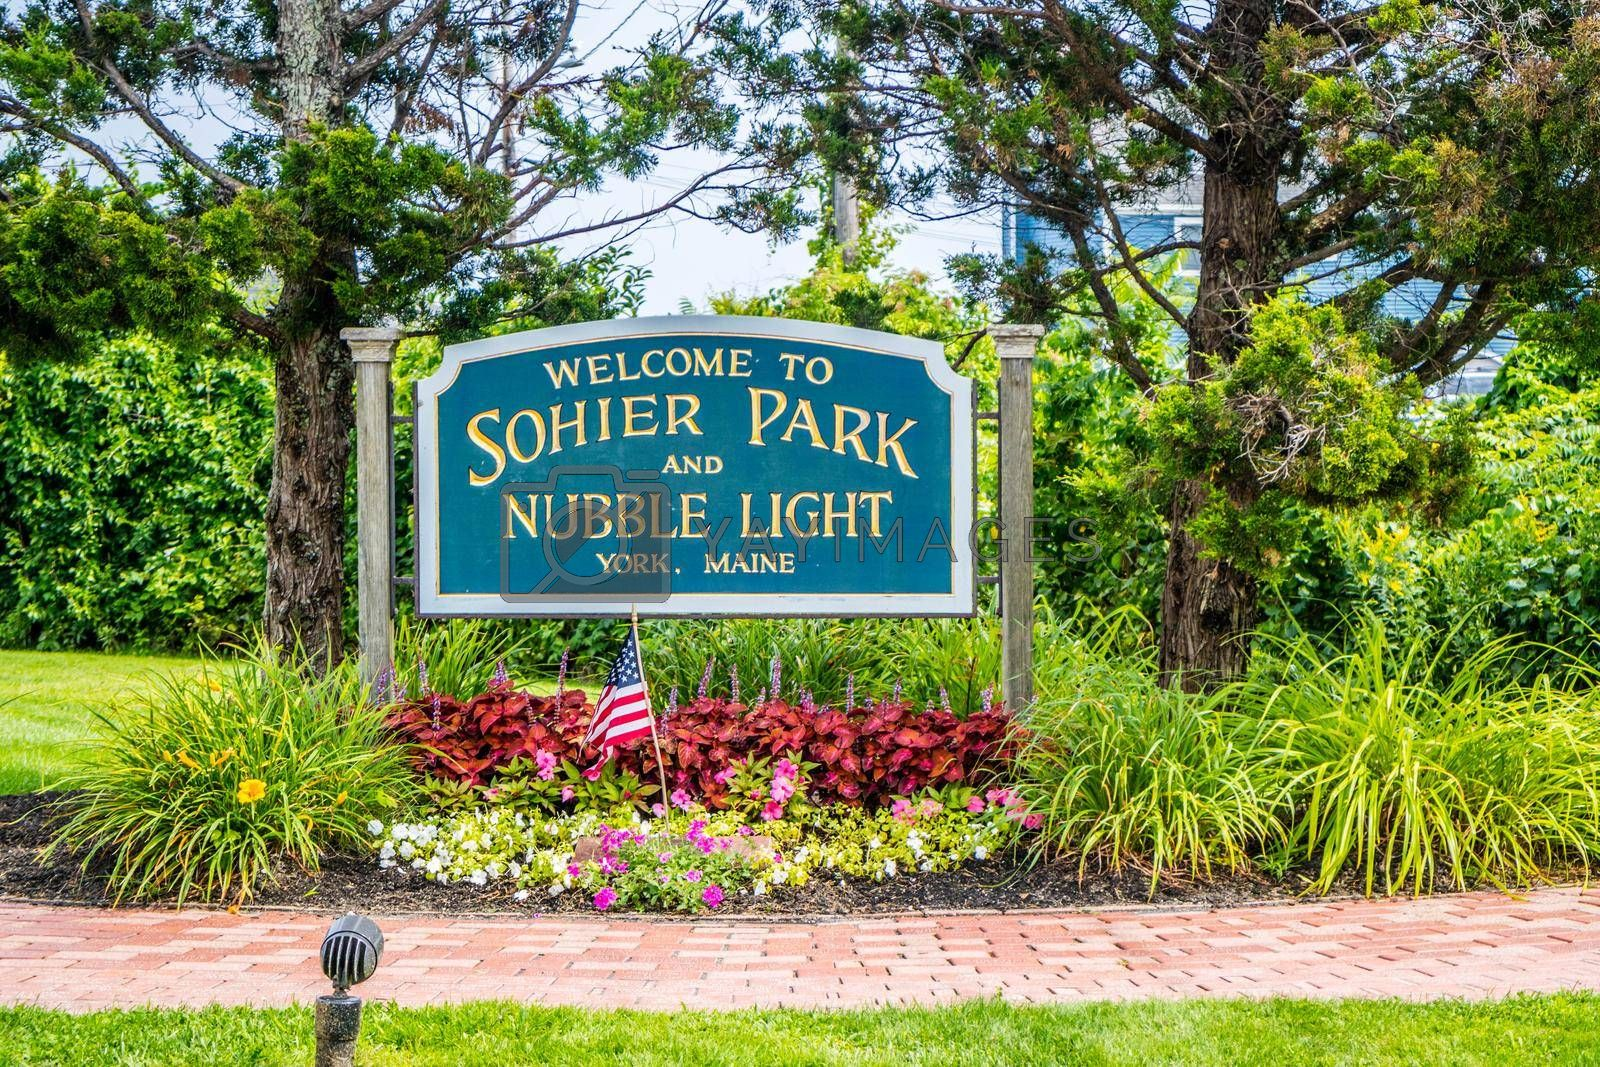 Royalty free image of York, ME, USA - August 25, 2018: A welcoming signboard at the entry point of Sohier Park by cherialguire